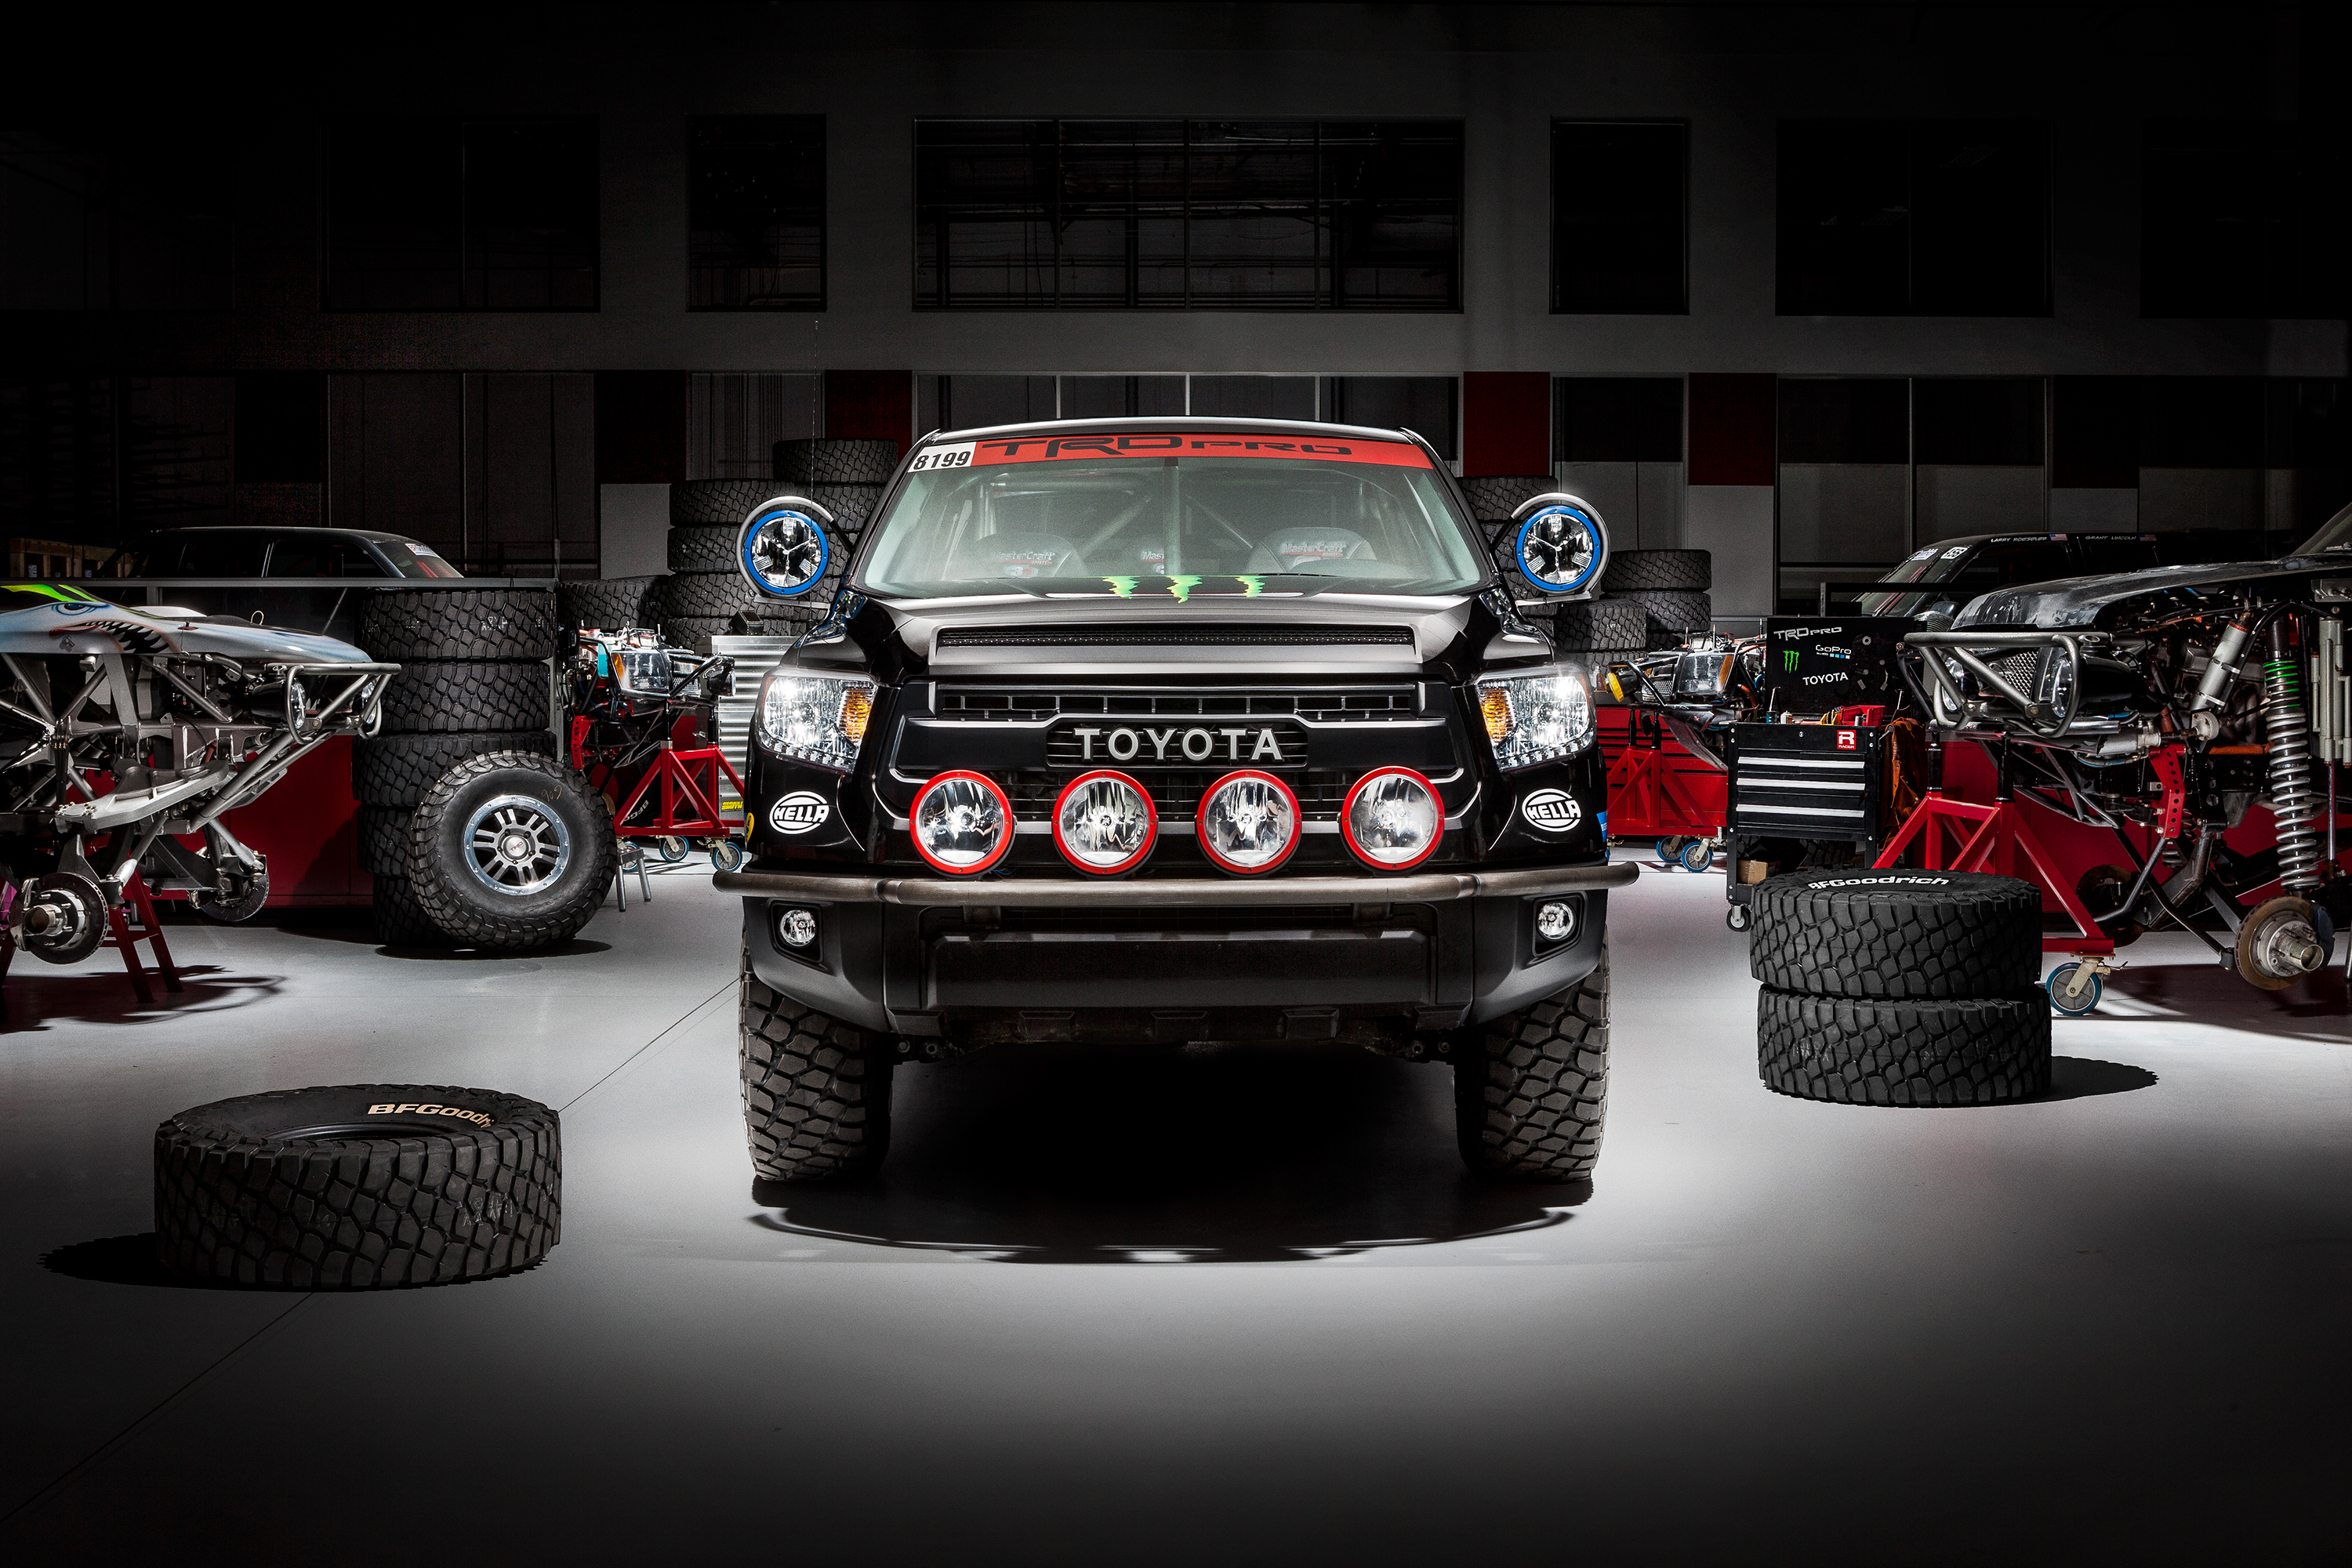 Toyota Tundra Diesel >> Baja 1000 Toyota Tundra TRD Pro Revealed: to Compete in Full Size Stock Class - autoevolution